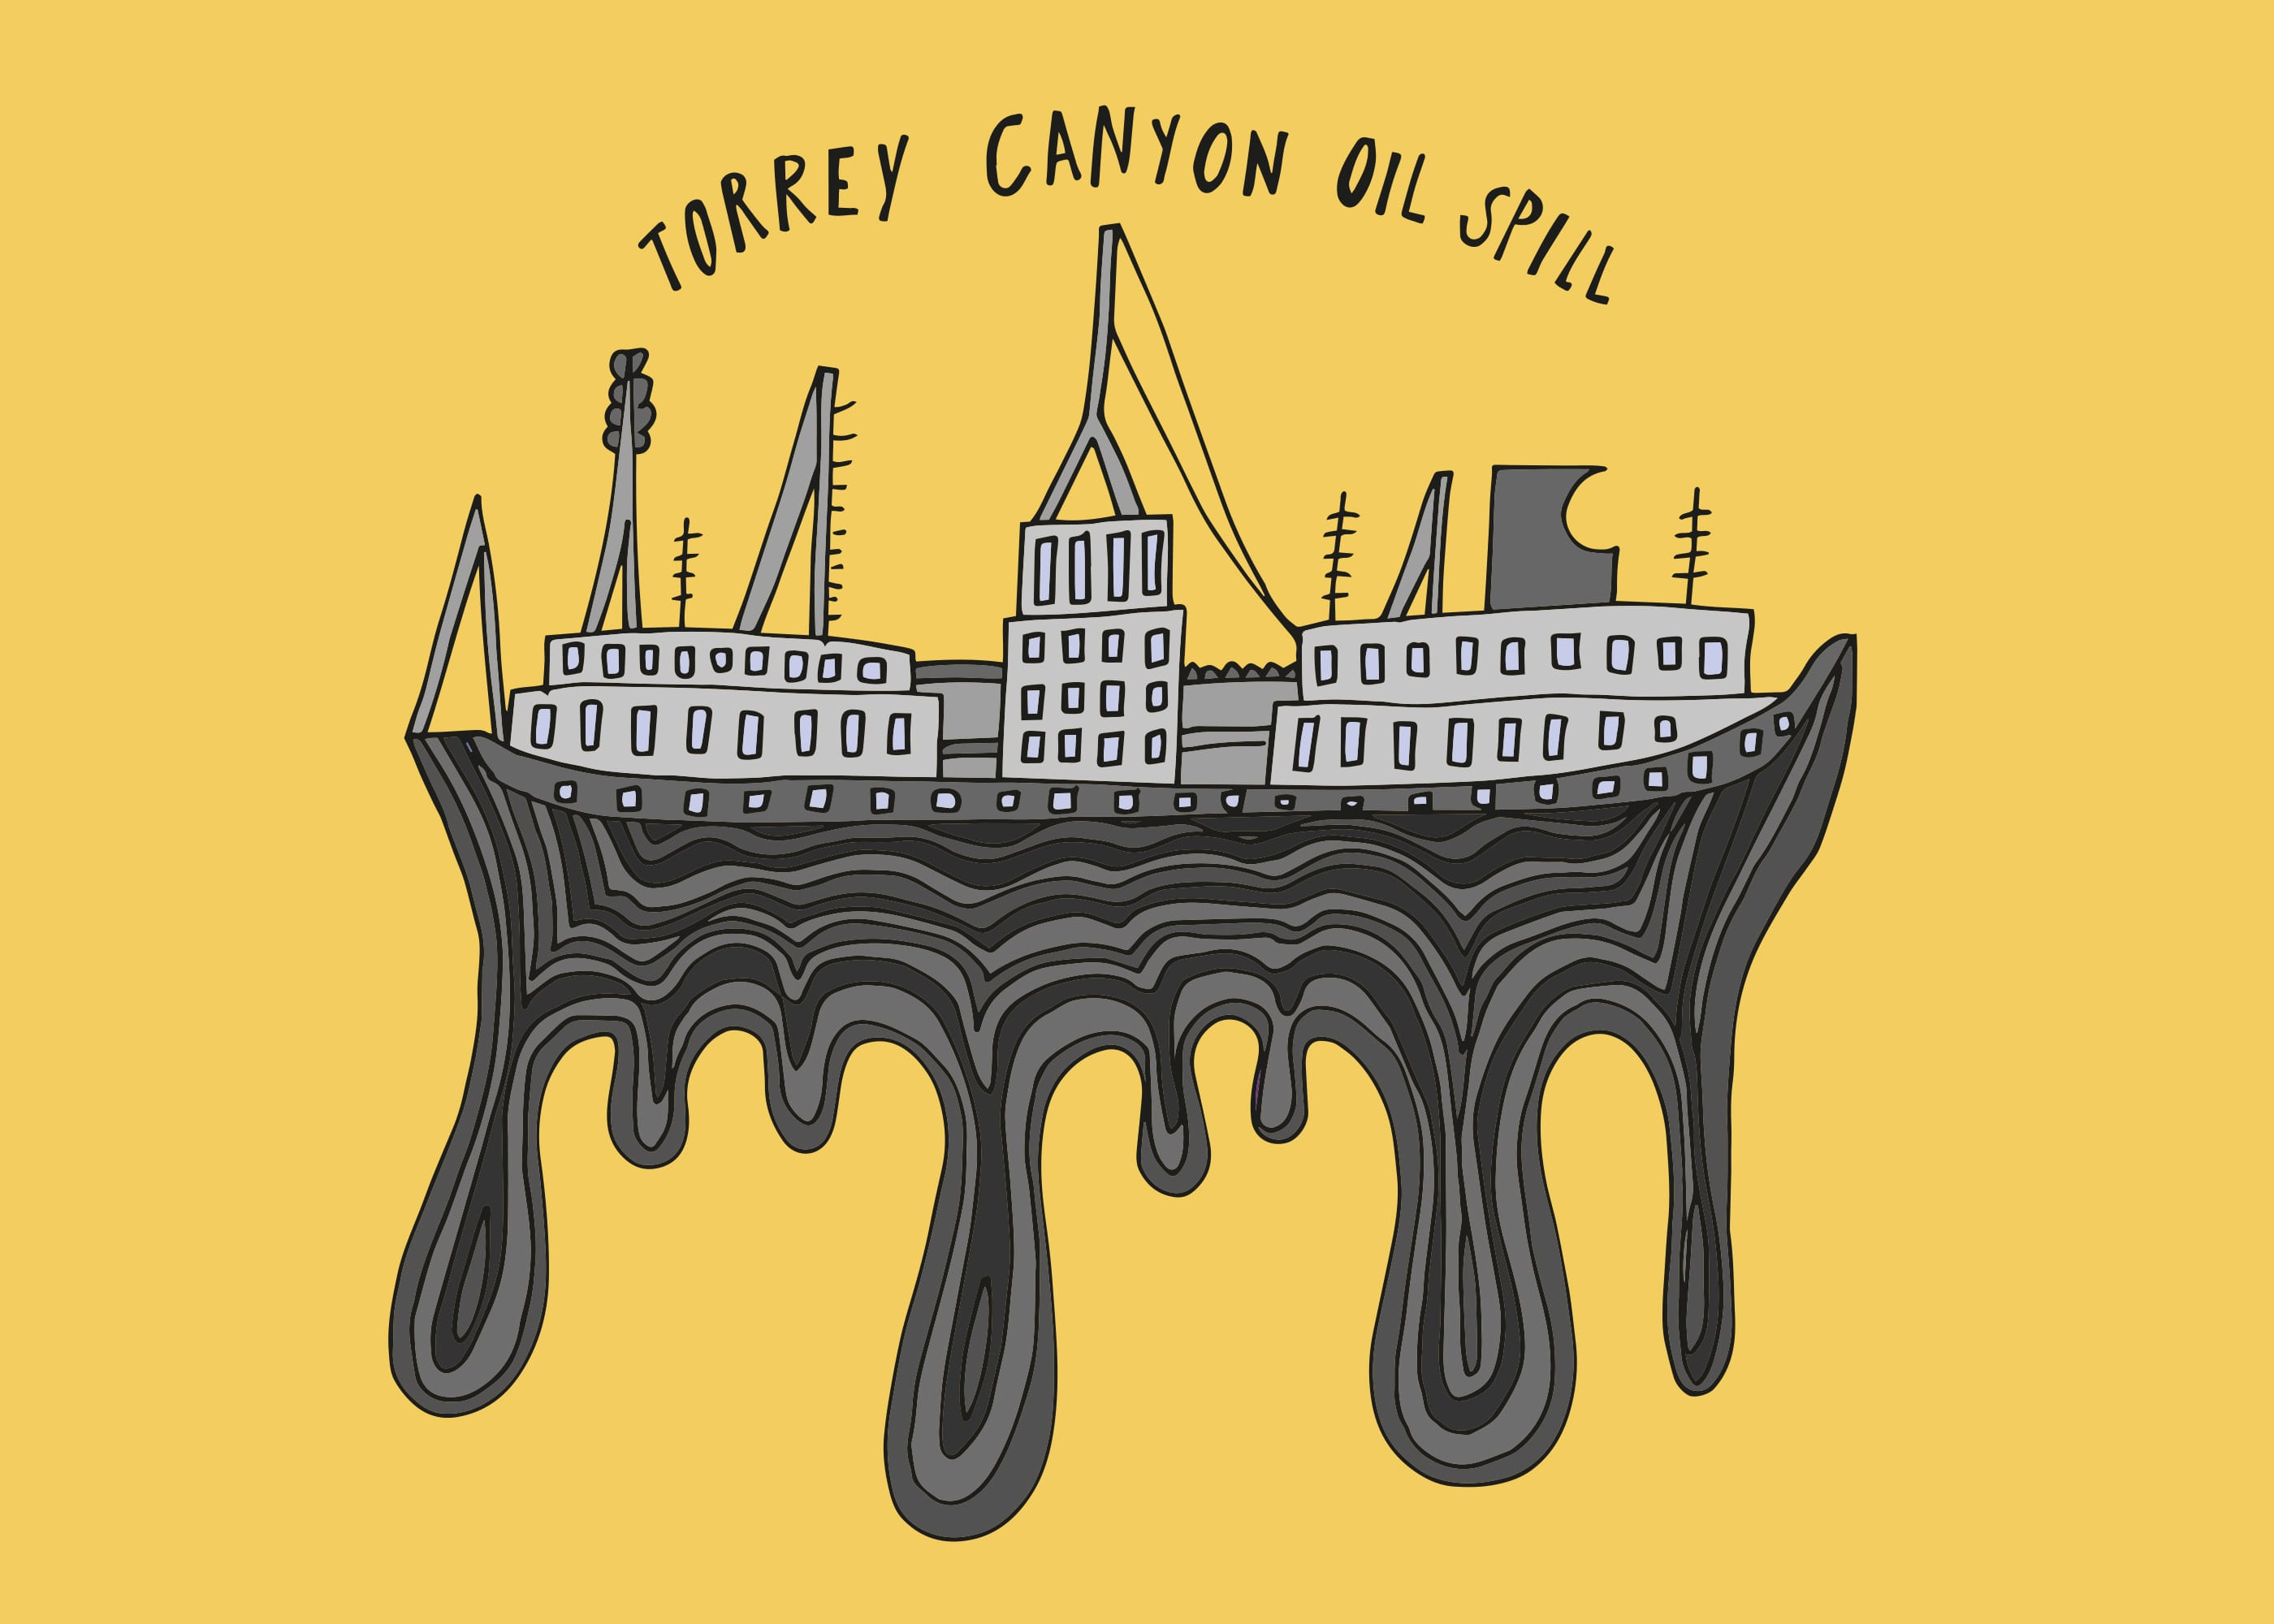 torrey-canyon-oil-spill-illustration